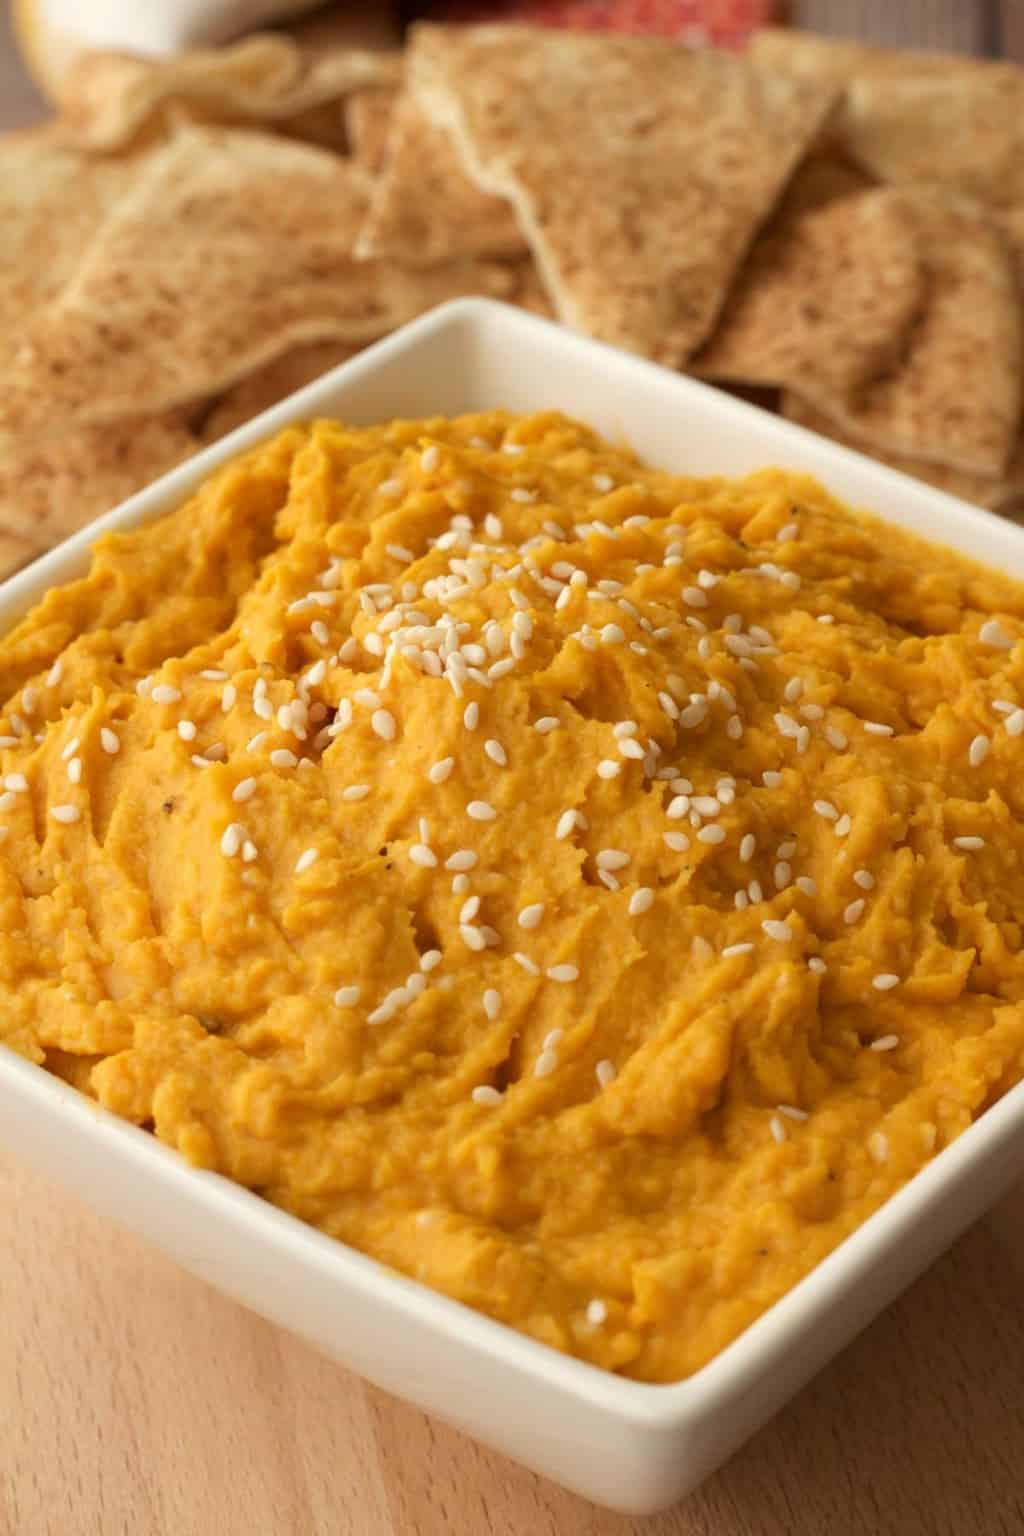 Roasted Butternut Squash Hummus. Vegan and Gluten-Free. Delicious served with flat breads or raw veggies. #vegan #lovingitvegan #hummus #appetizer #butternutsquash